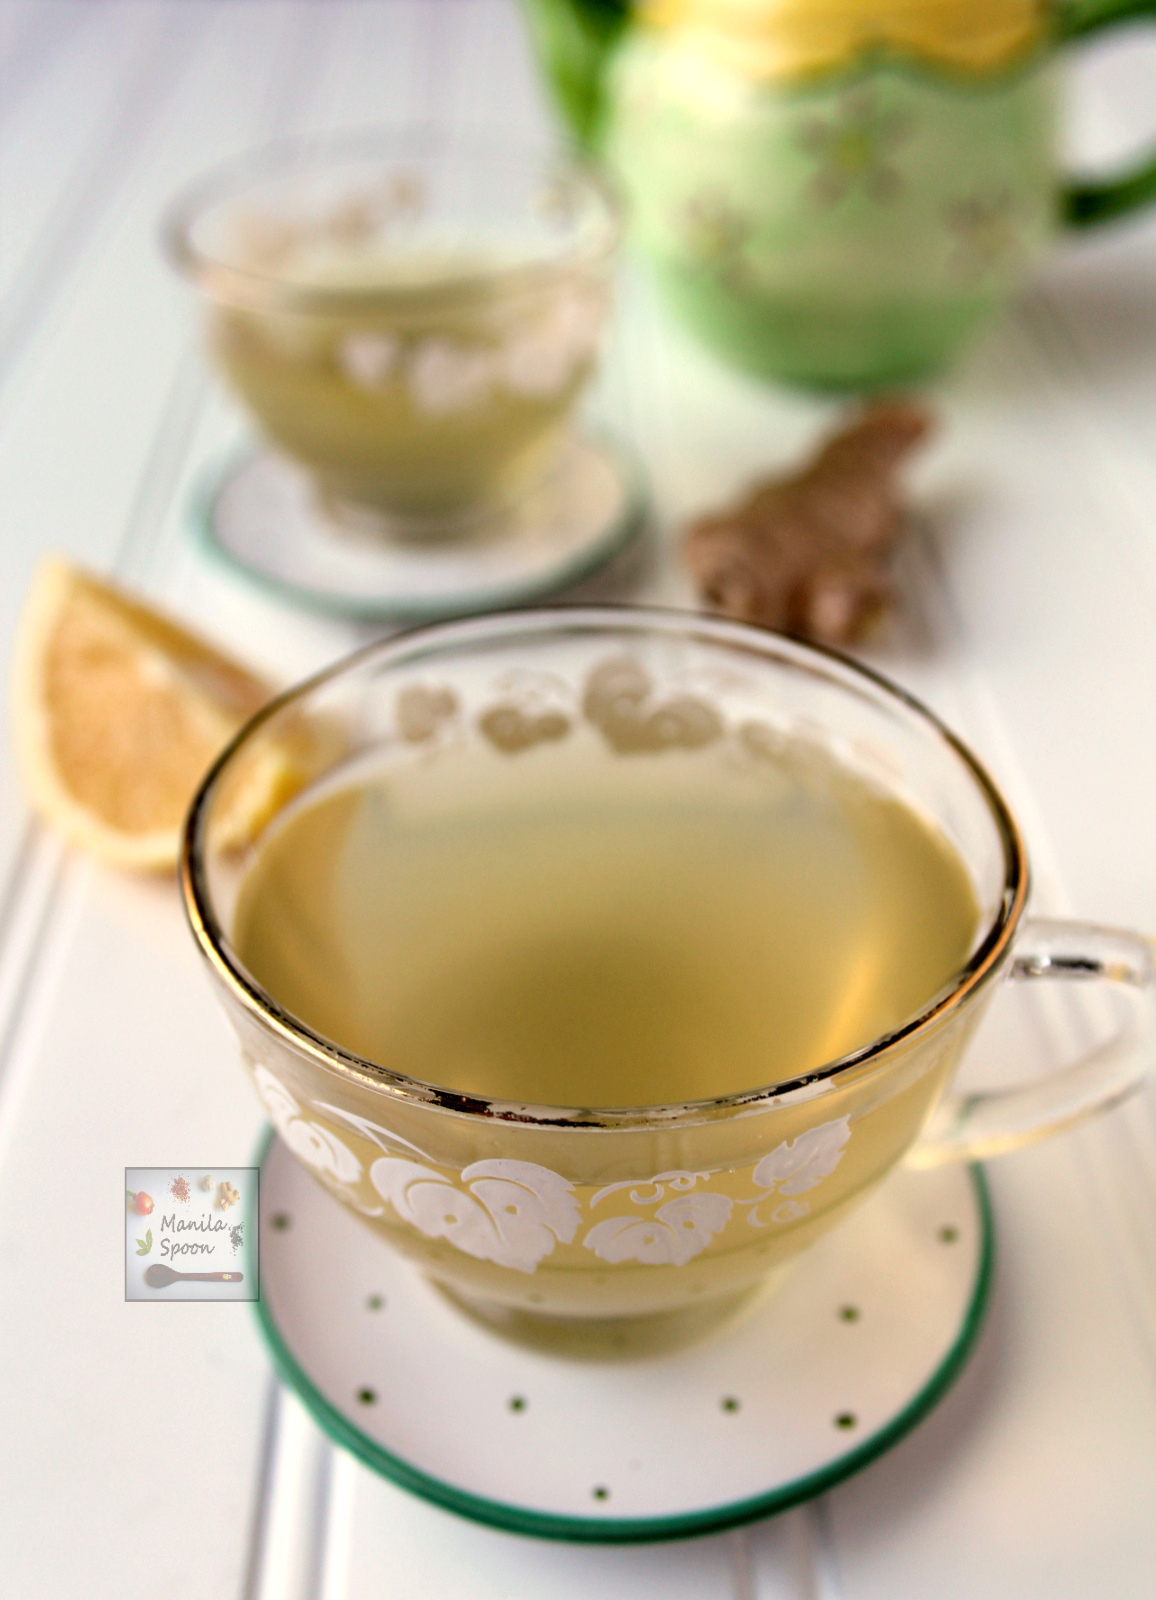 This is what I drink whenever I feel the onset of cold,cough, sore throat or flu. This fresh ginger tea with honey (salabat) helps boost your immune system. A delicious natural remedy that's also perfect for tea time.